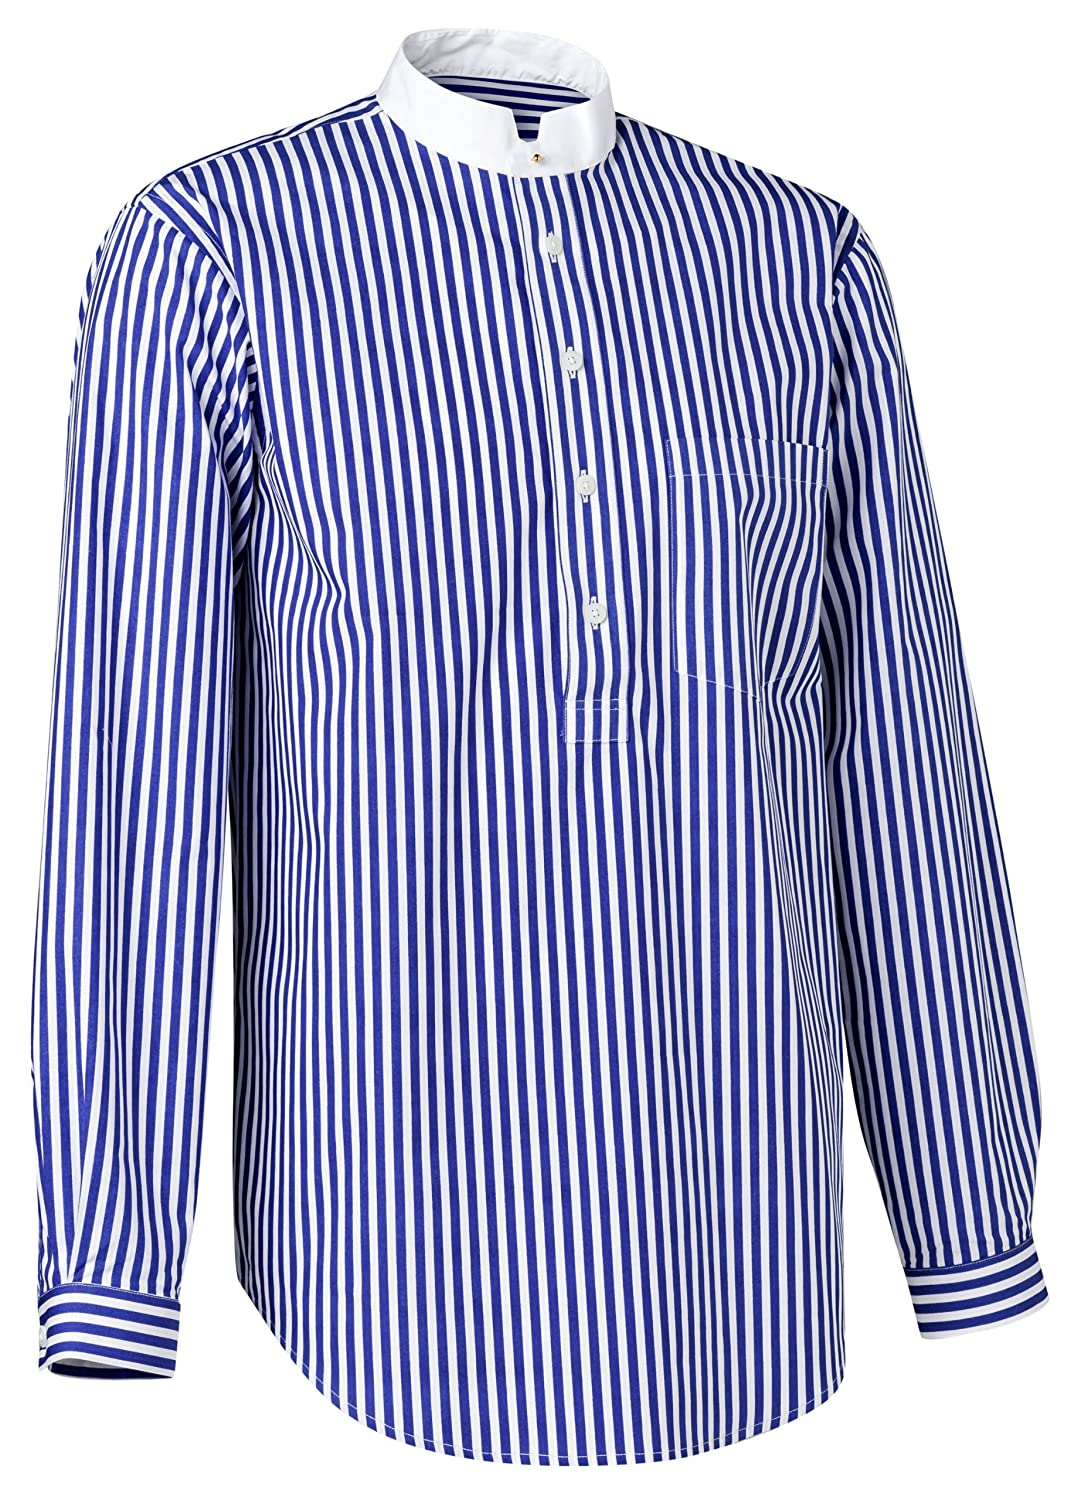 Roaring 1920's Men's Shirts- Gatsby to Boardwalk Empire